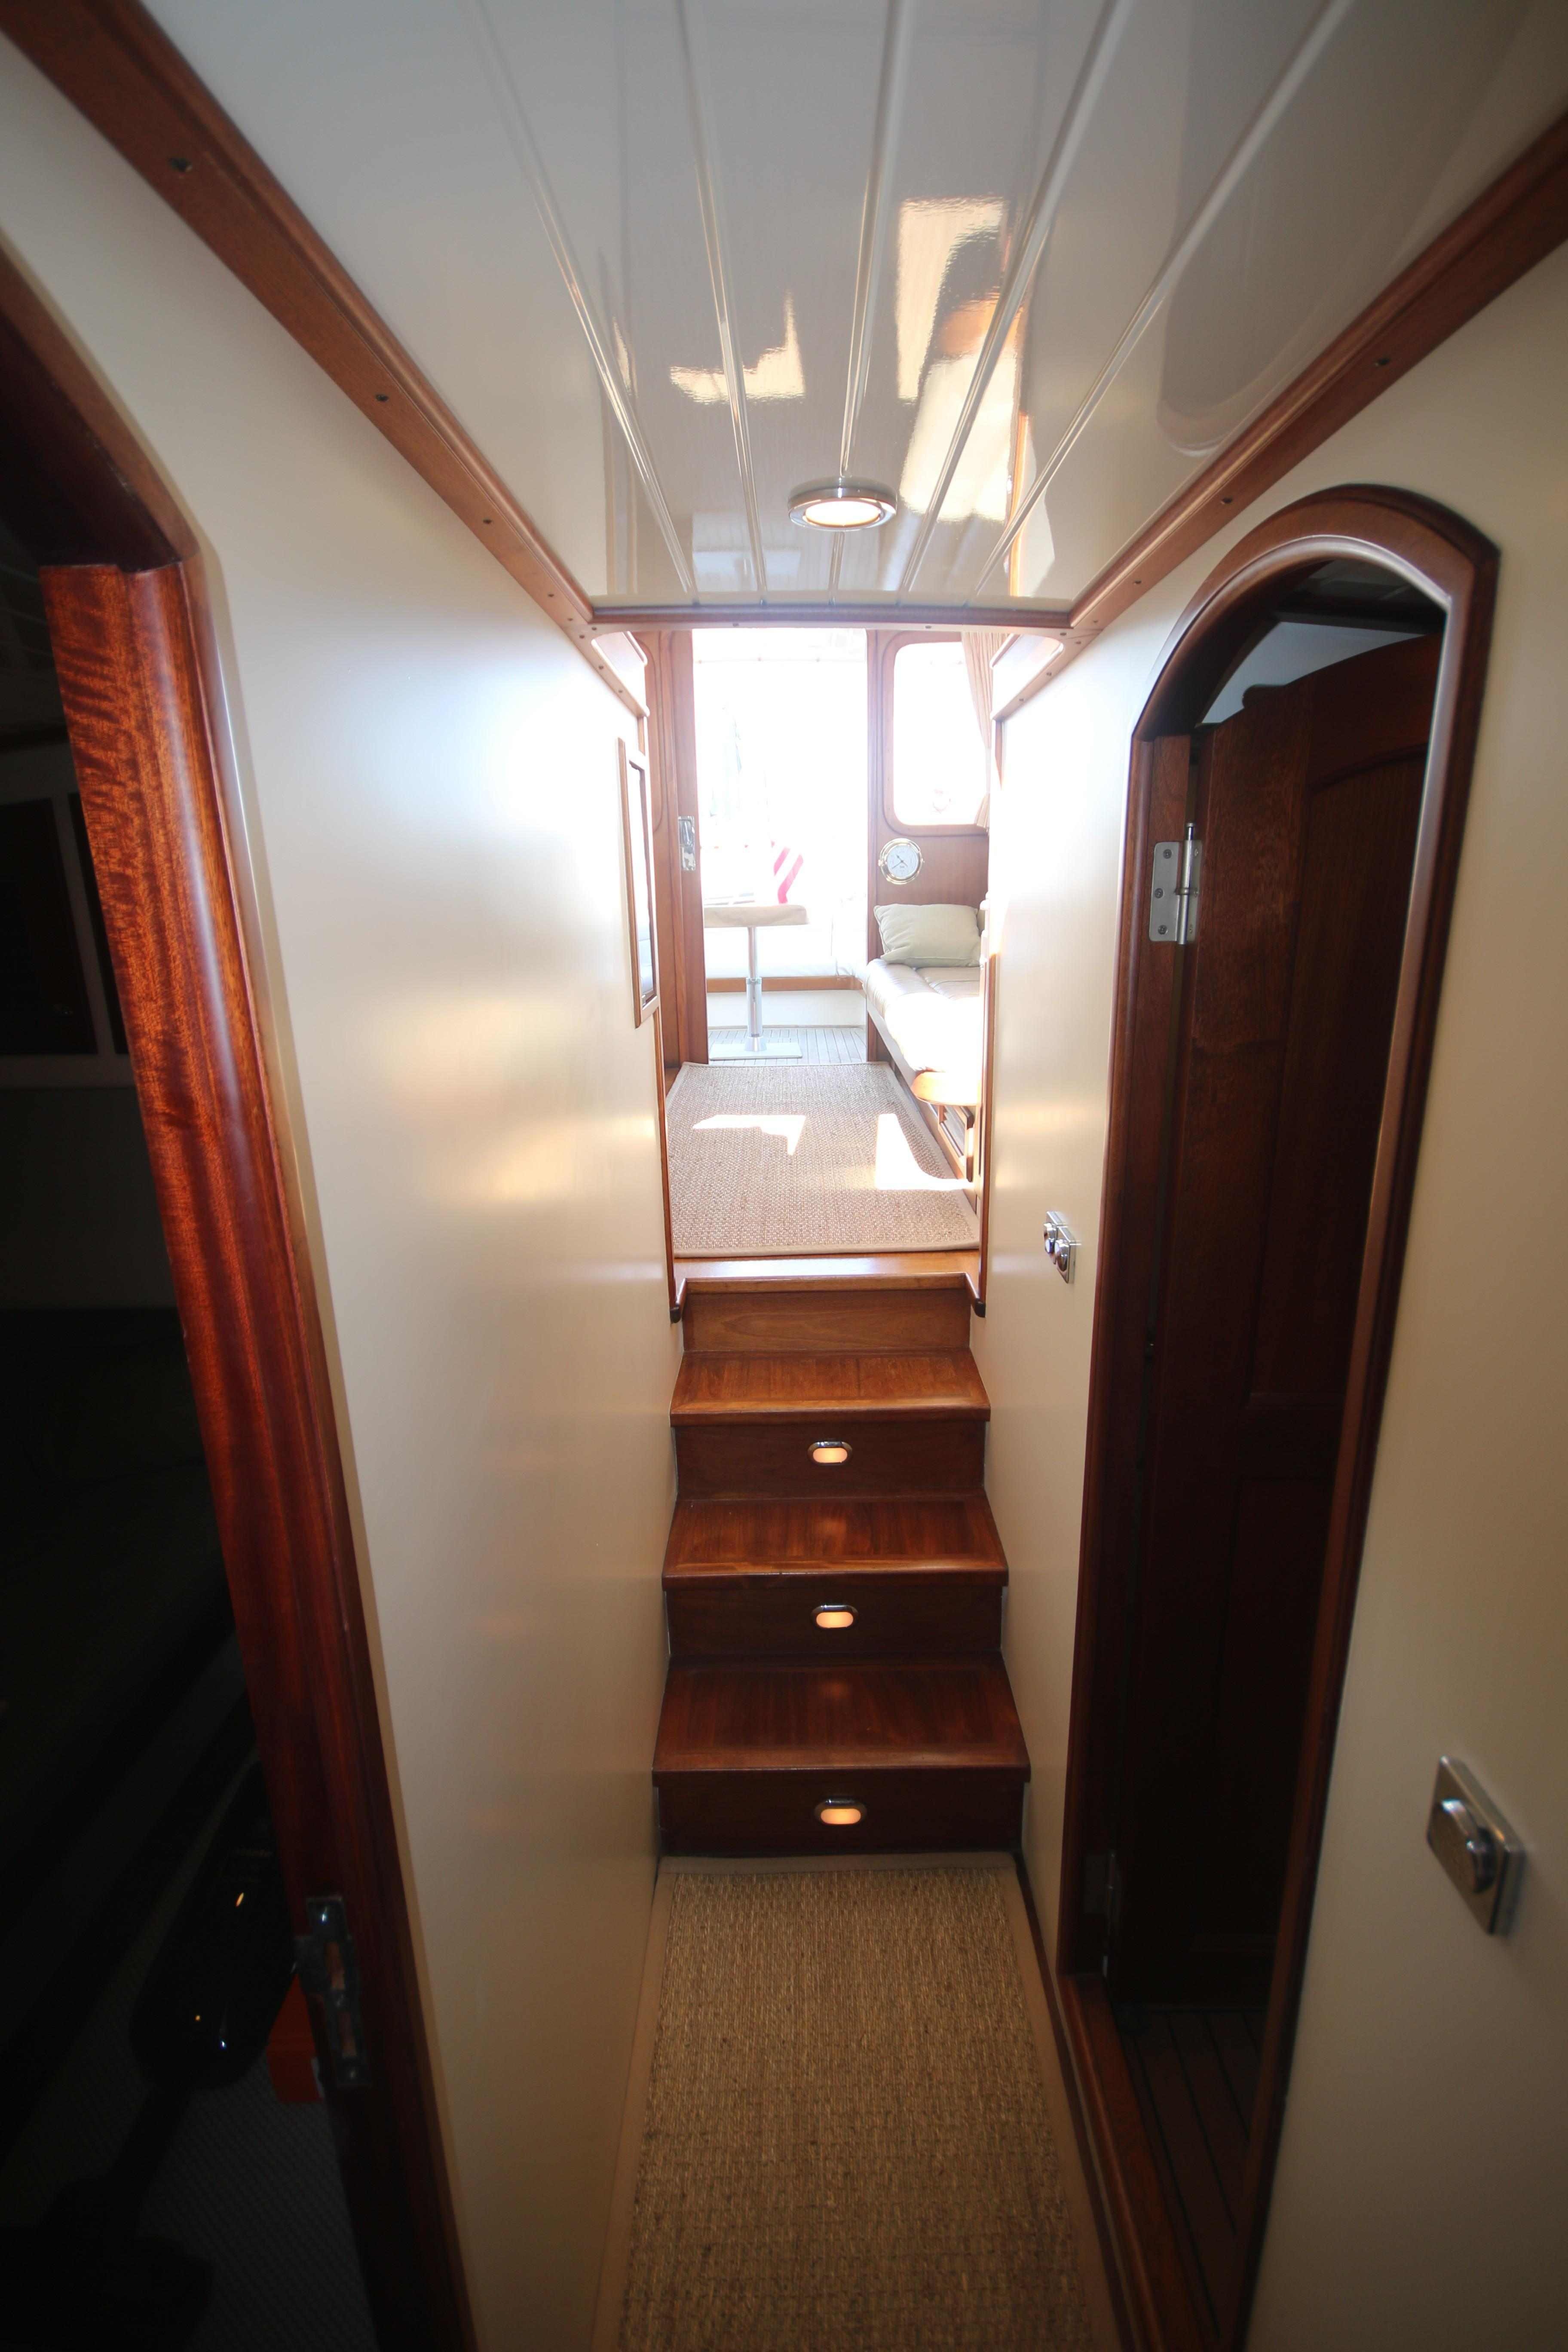 looking aft in hallway